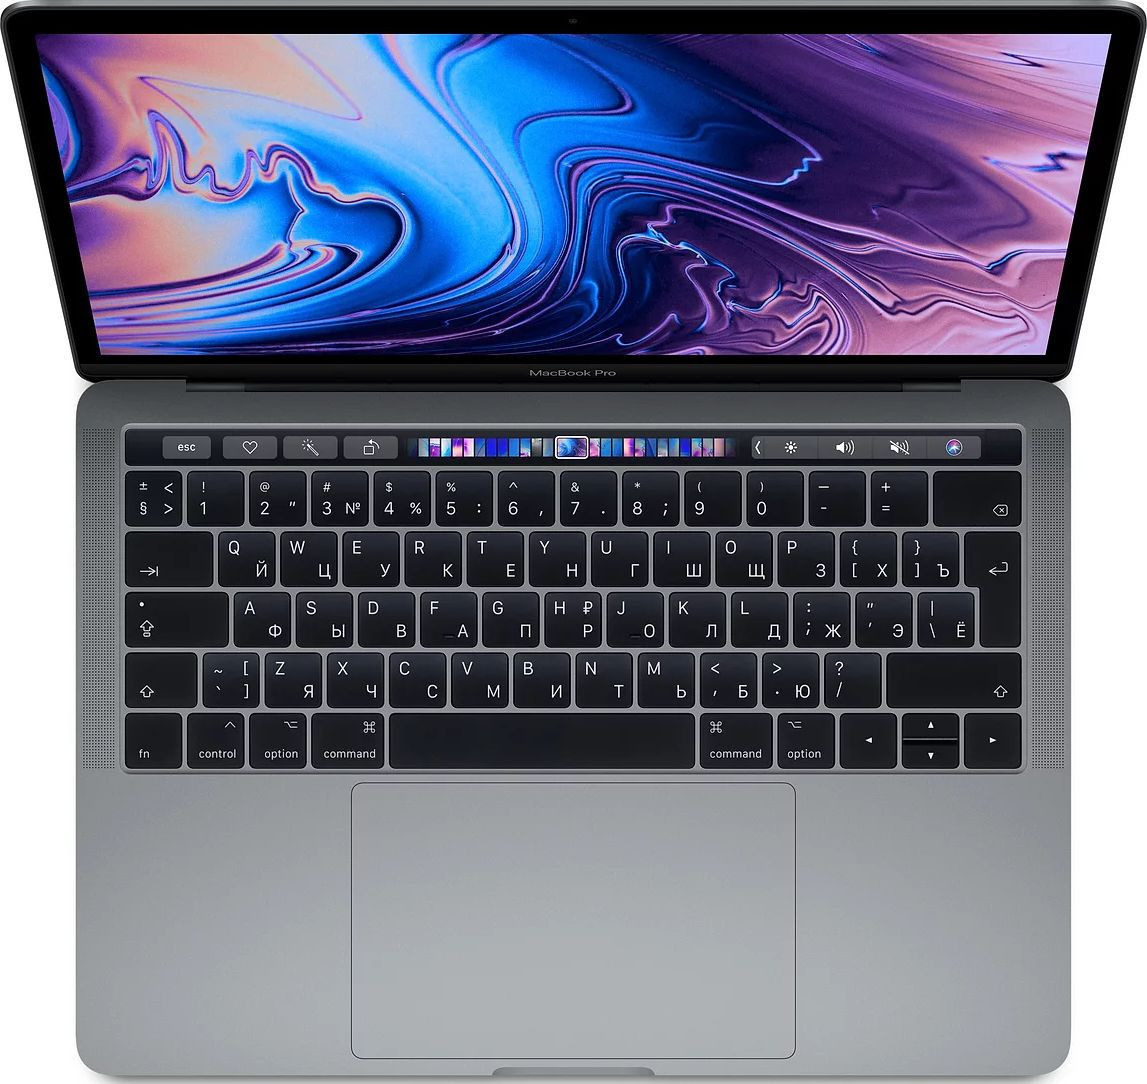 Macbook Pro 13' 2020 i5 256gb touch MXK32 Space Gray